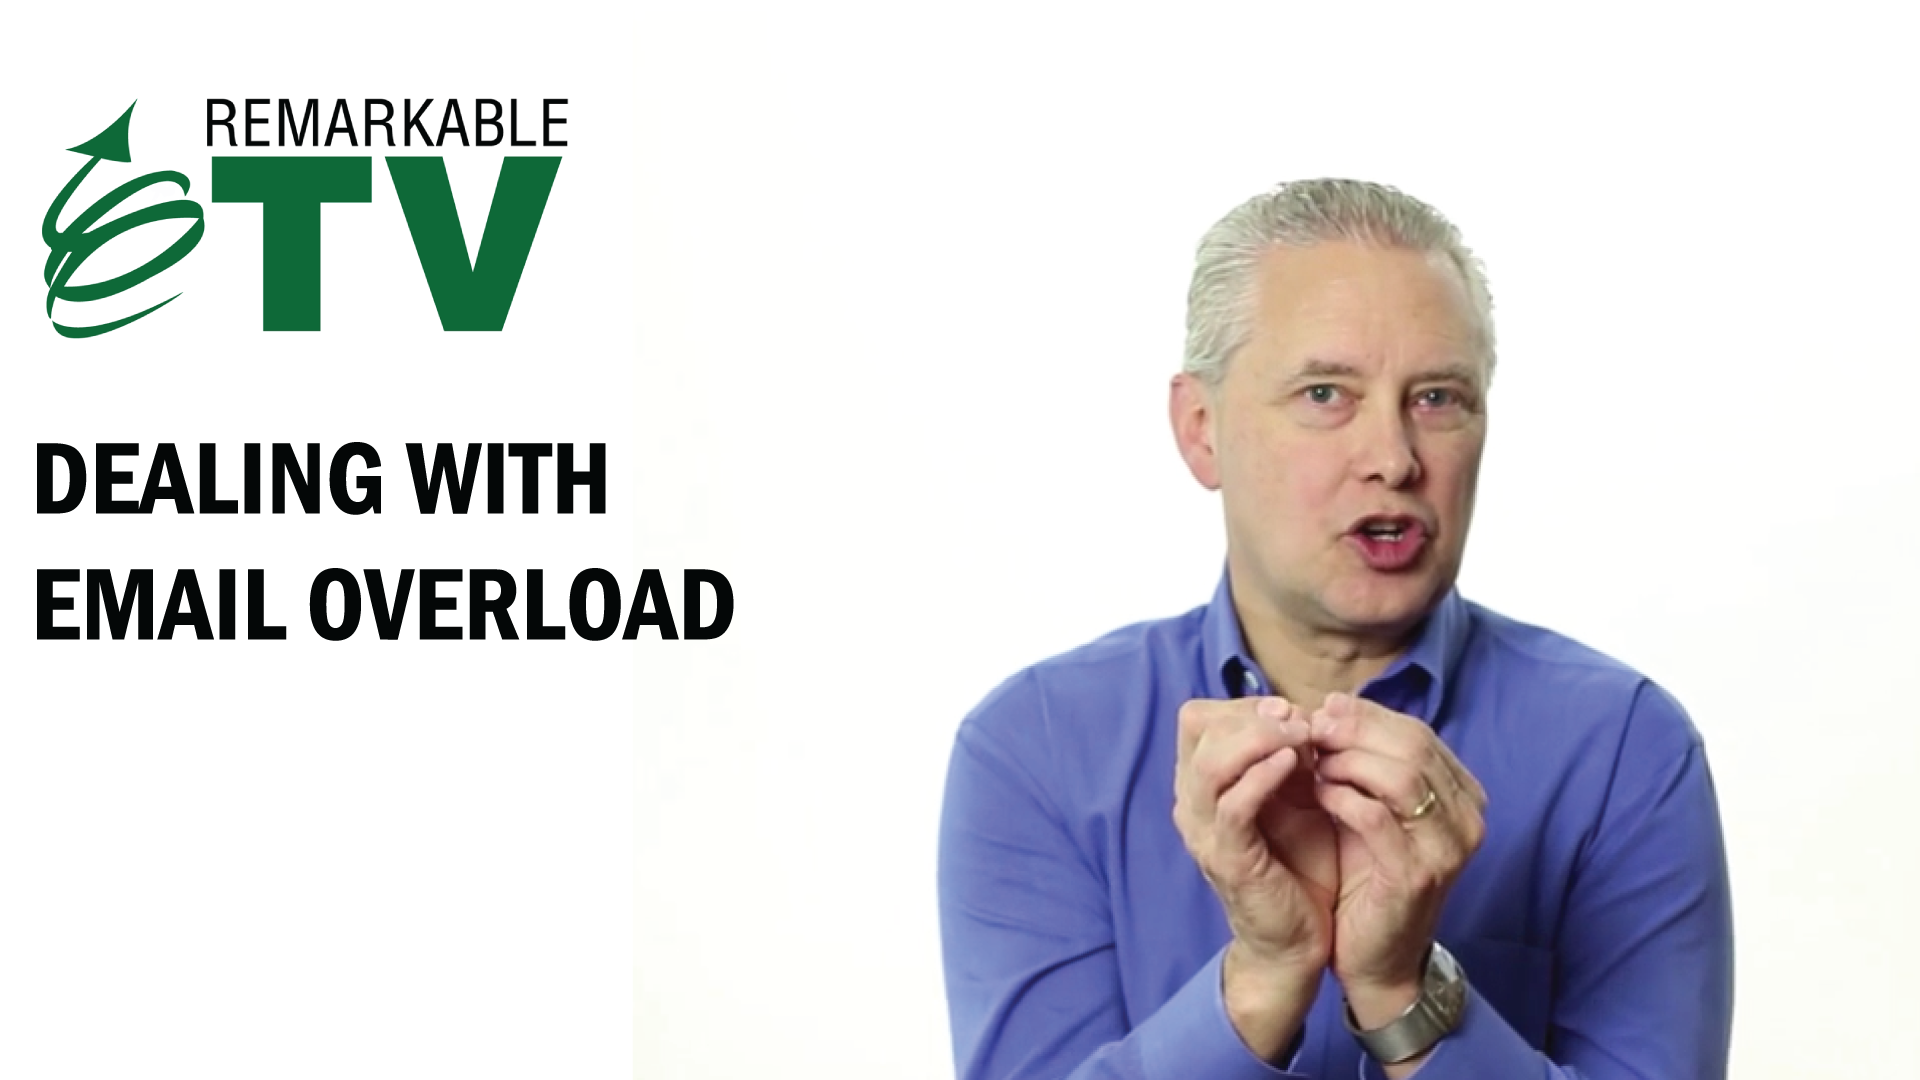 How do you deal with email overload at work? Kevin Eikenberry gives you some tips in this week's Remarkable TV.